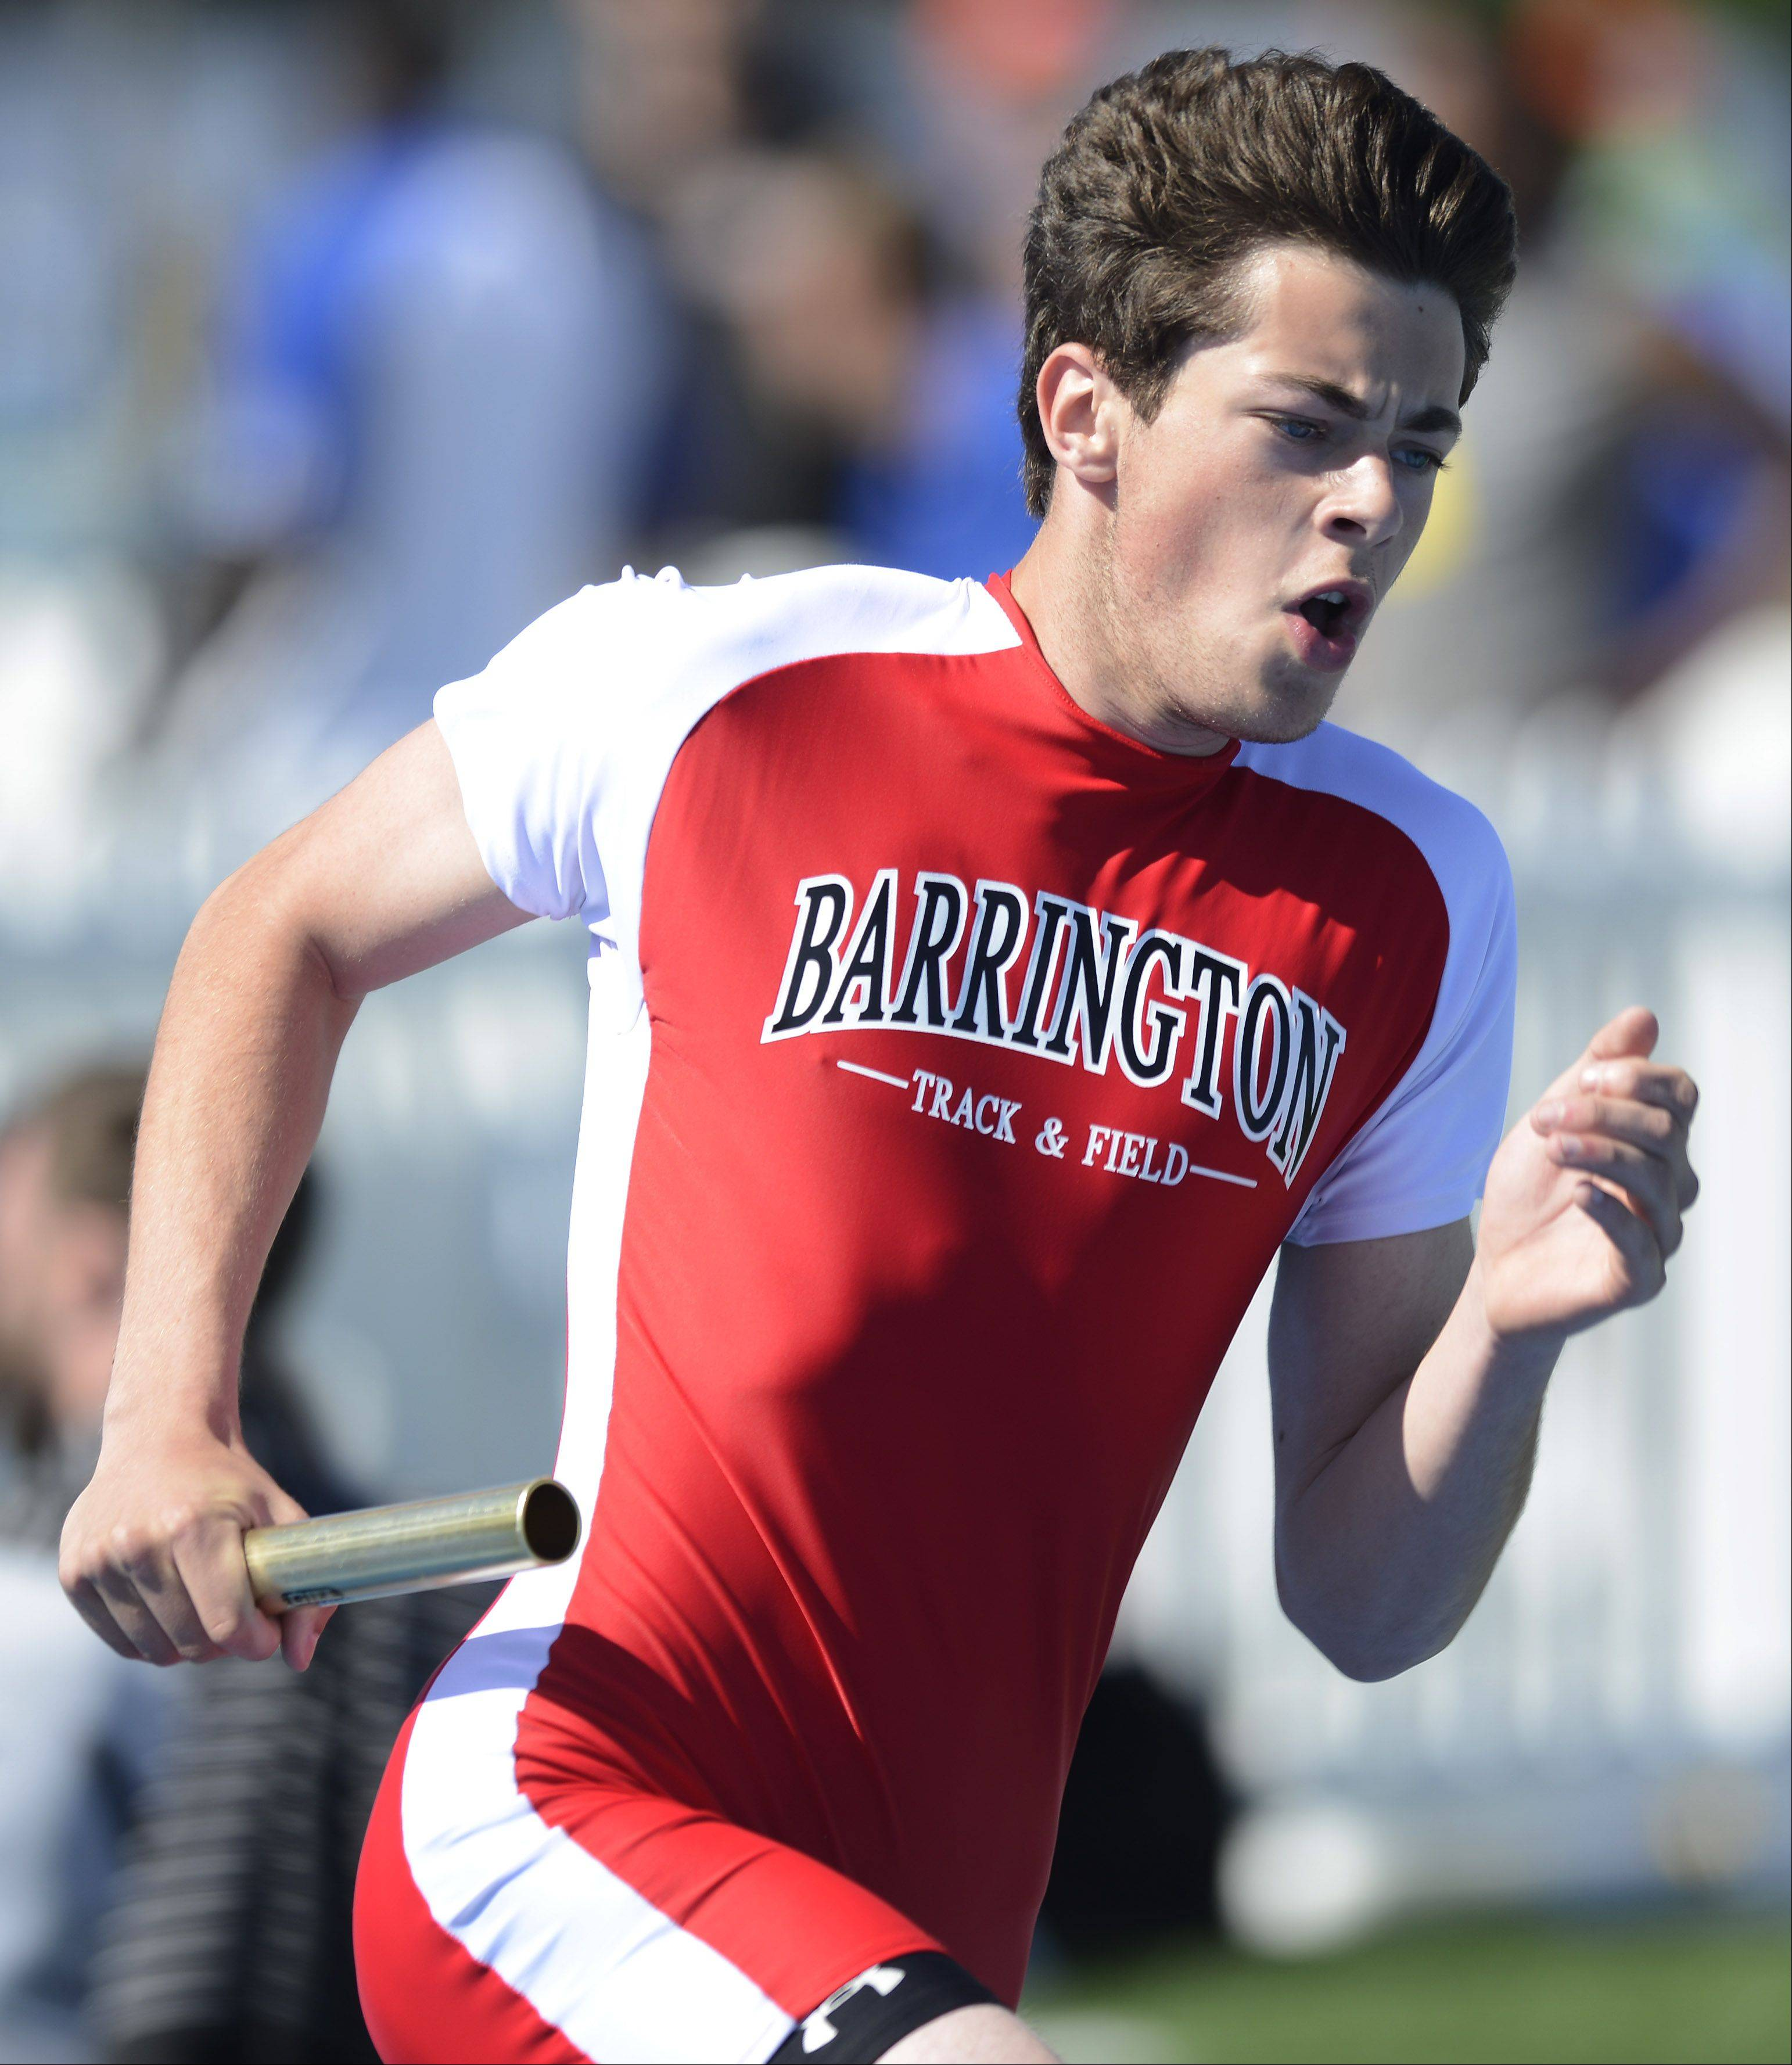 Barrington's John Andraschko carries the baton for his team in the Class 3A 4x400-meter relay during the boys track state meet preliminaries in Charleston on Friday.